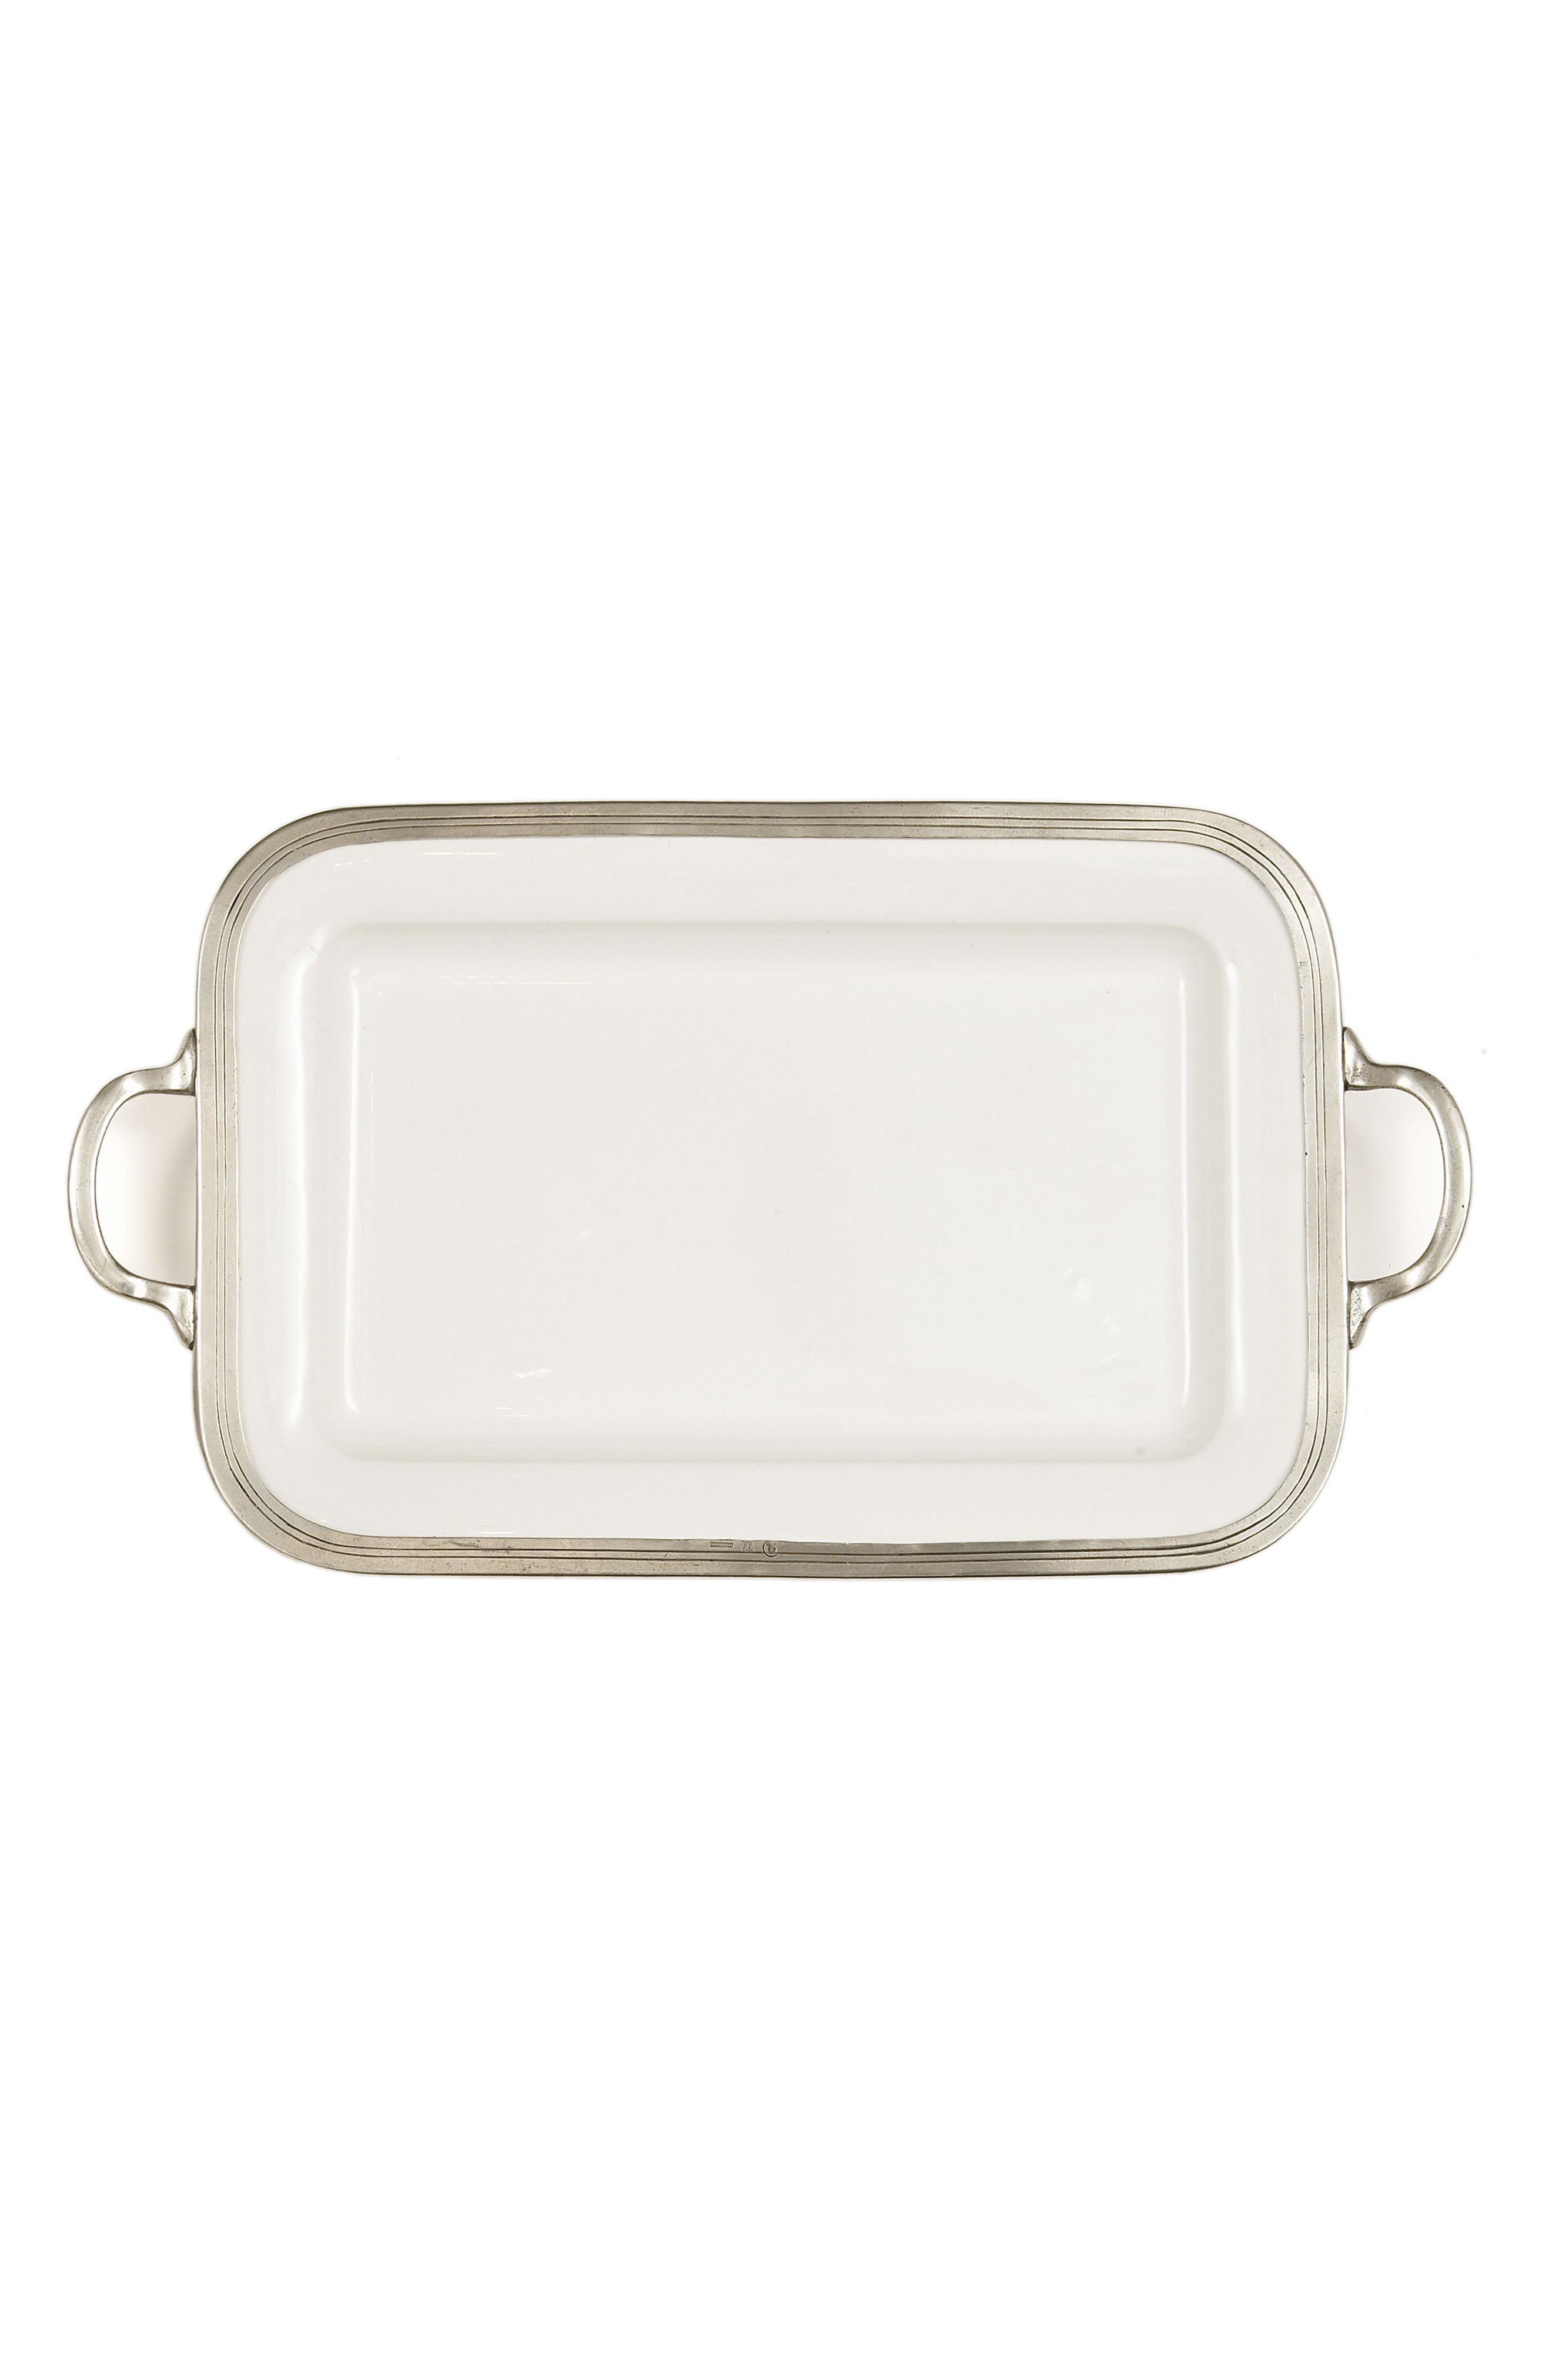 Tuscan Rectangular Serving Tray,                             Main thumbnail 1, color,                             White